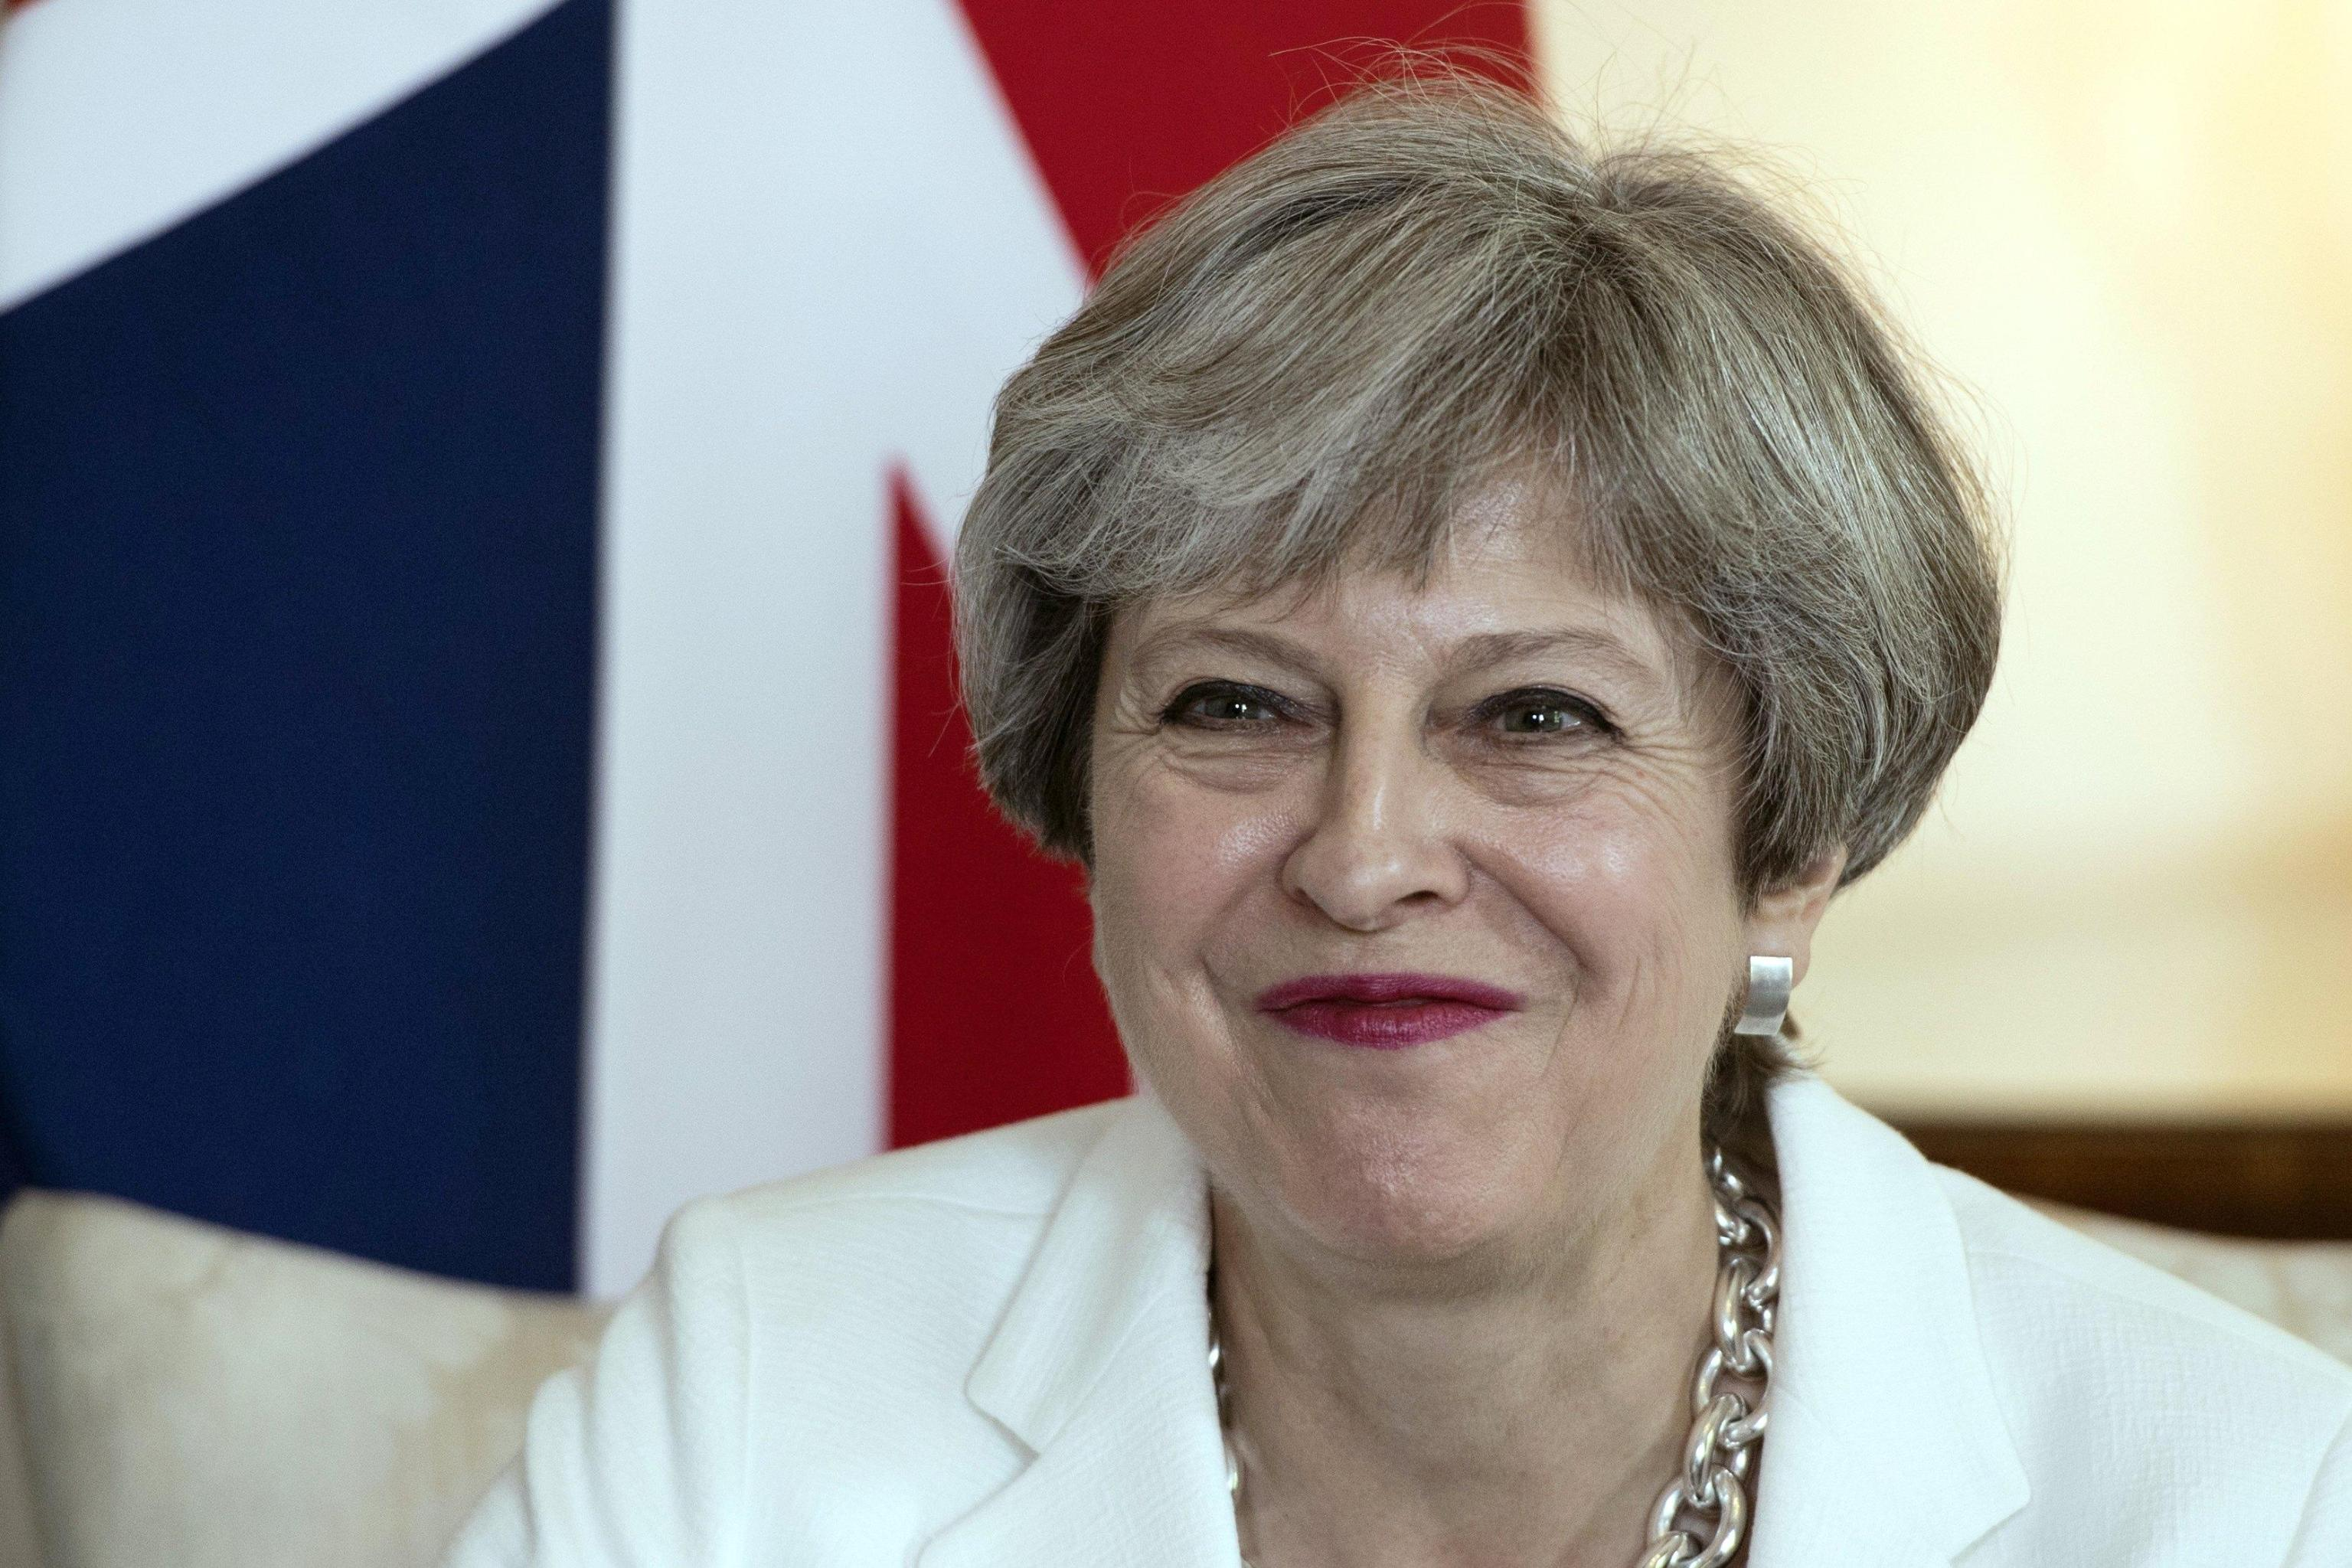 Brexit, il piano segreto del governo May: 'Immigrati UE solo se qualificati'